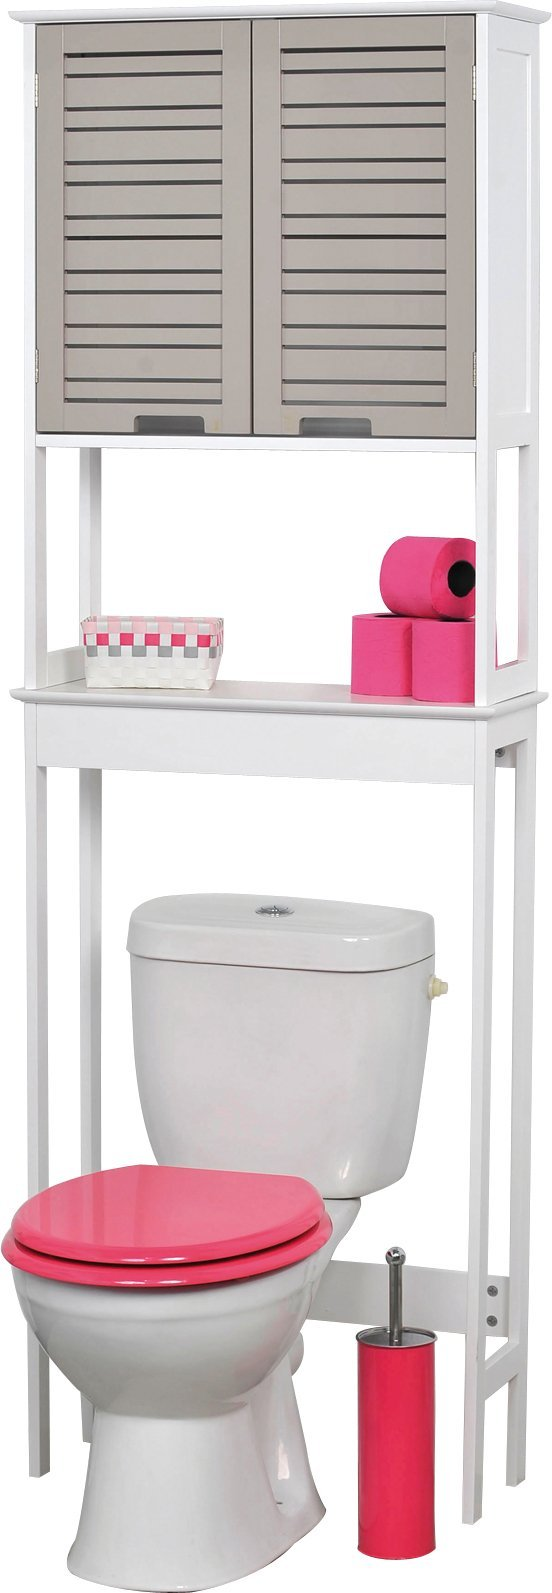 EVIDECO 9904302 So Romantic 24.8'' x 70.5'' Free Standing Over the Toilet  Space Saver Cabinet